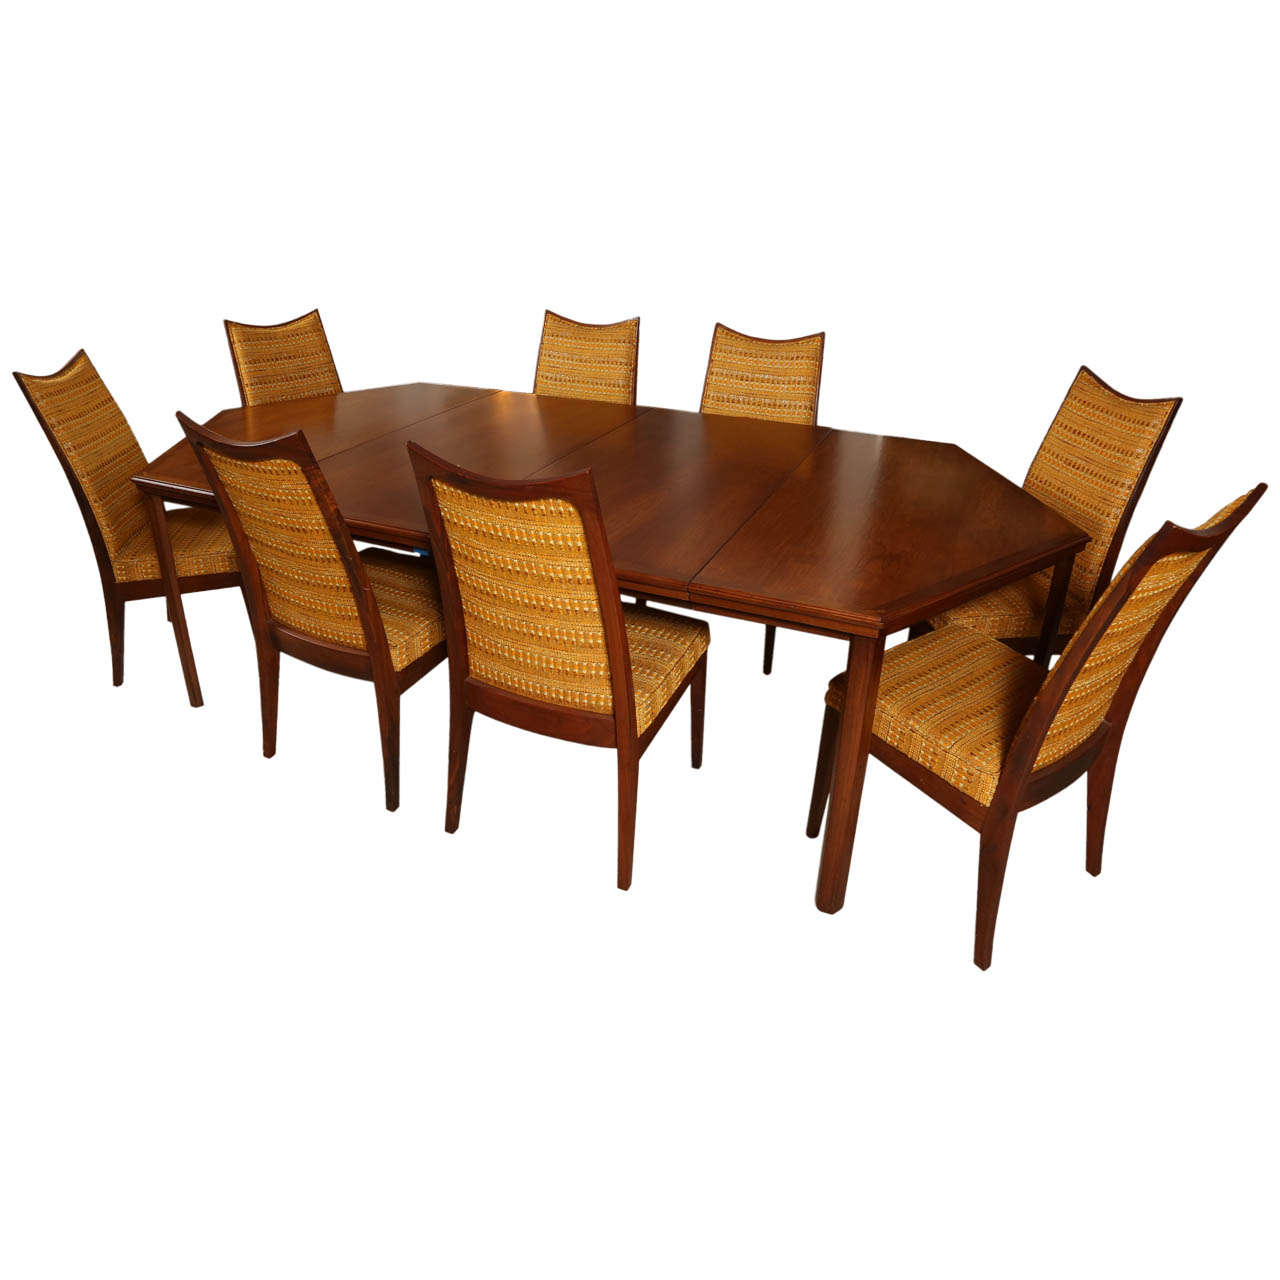 John kapel custom hexagonal dining table and set of eight for Custom kitchen tables and chairs